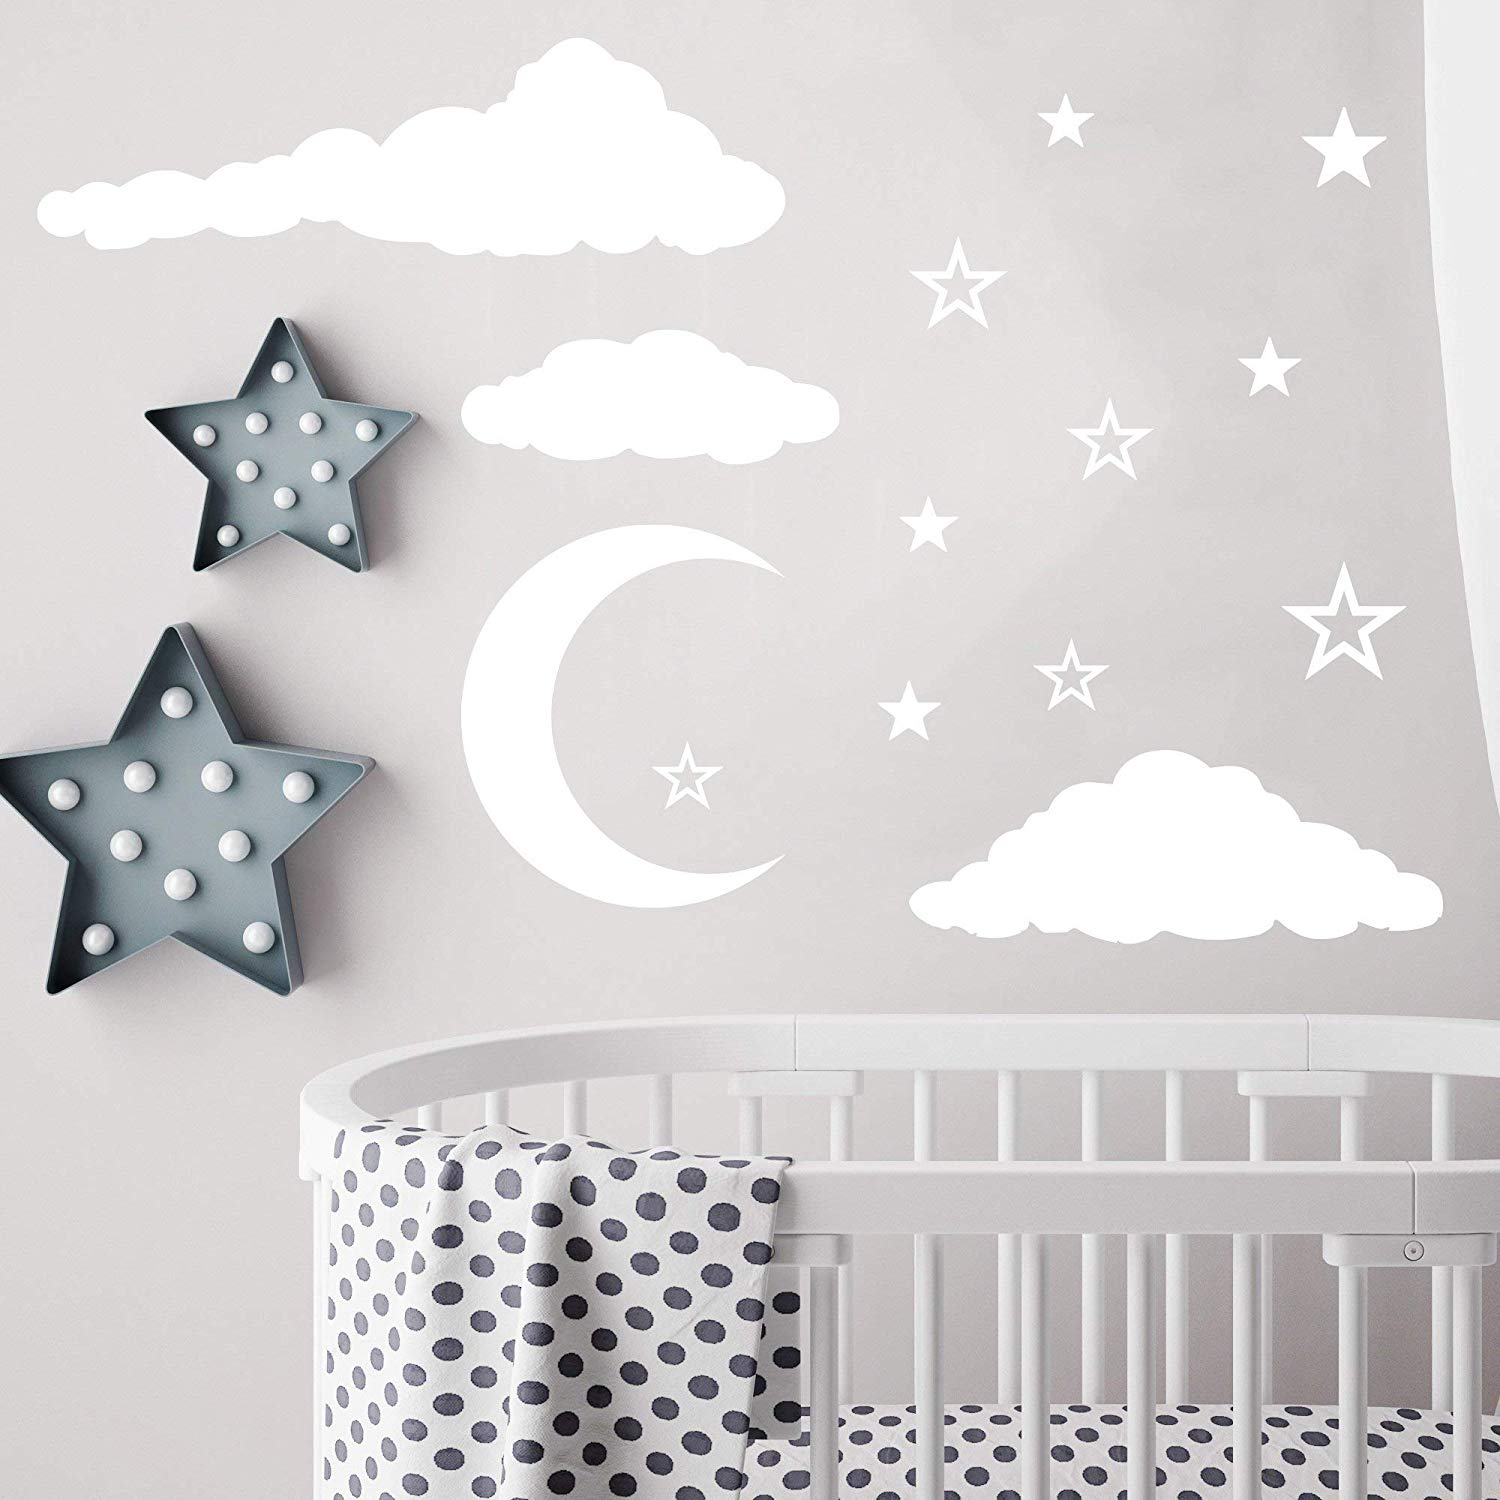 Cloud Wall Decals/Moon and Stars Wall Decals/Nursery Wall Decal. Star Wall Decal. Moon and Stars Wall Stickers. Wall Vinyl Sticker Nursery. Baby Room Decor Art kp3